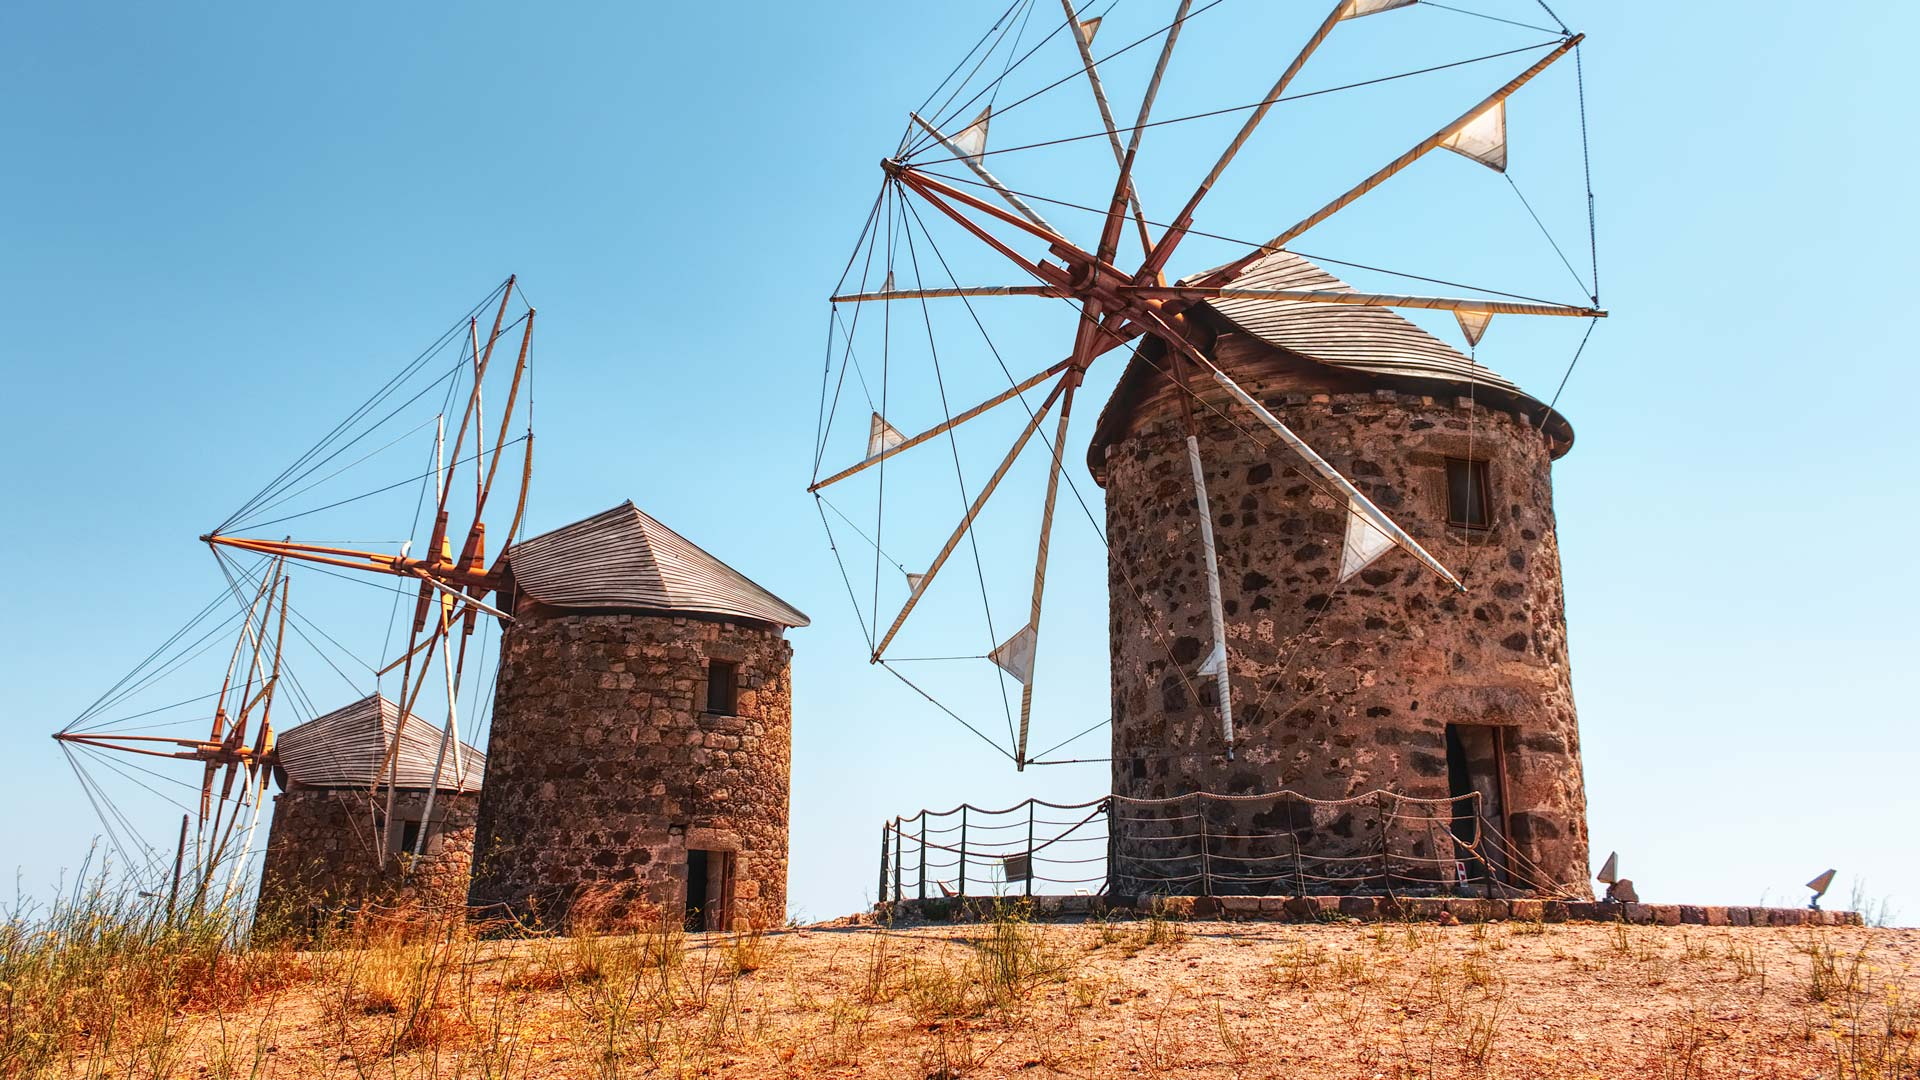 The windmills of Hora